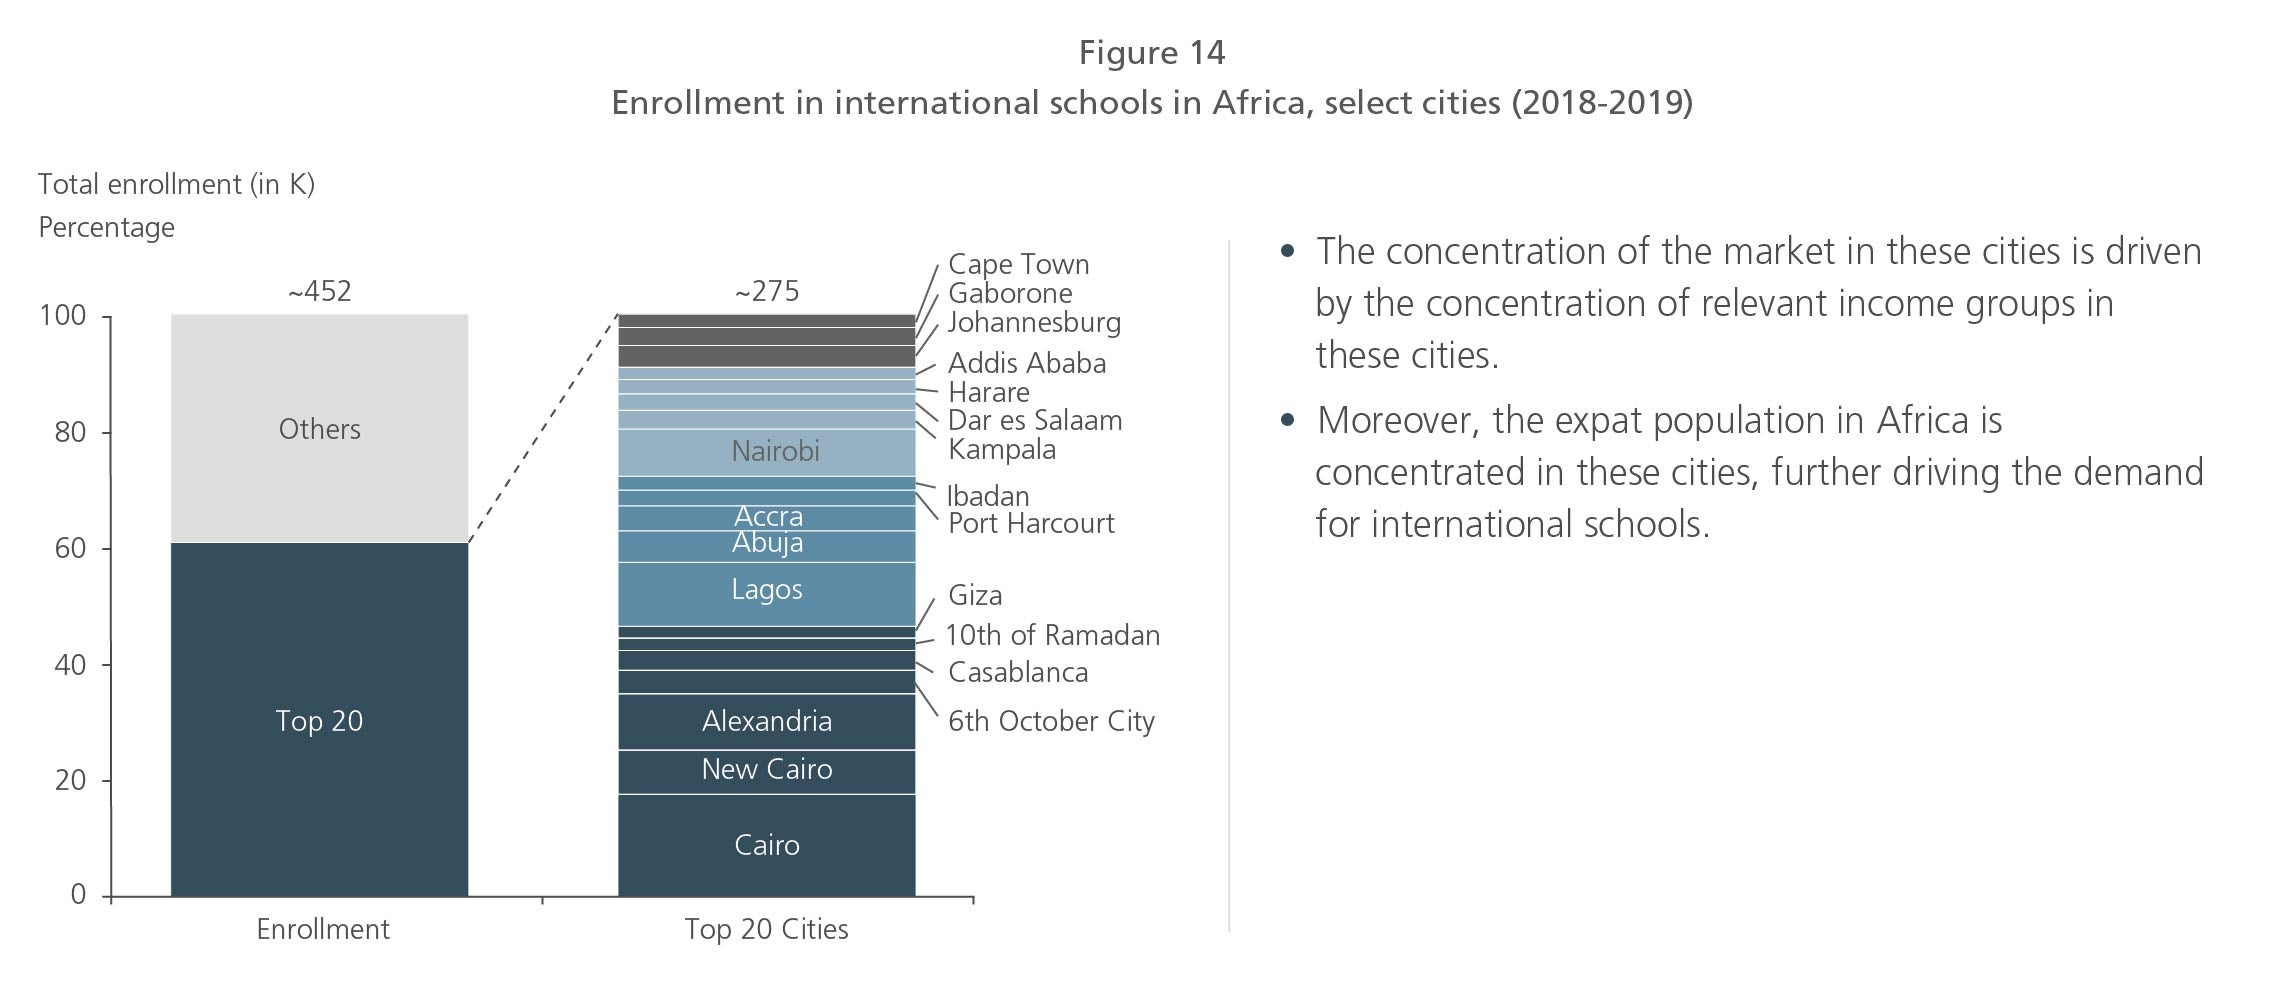 Enrollment in international schools in Africa, select cities (2018-2019)